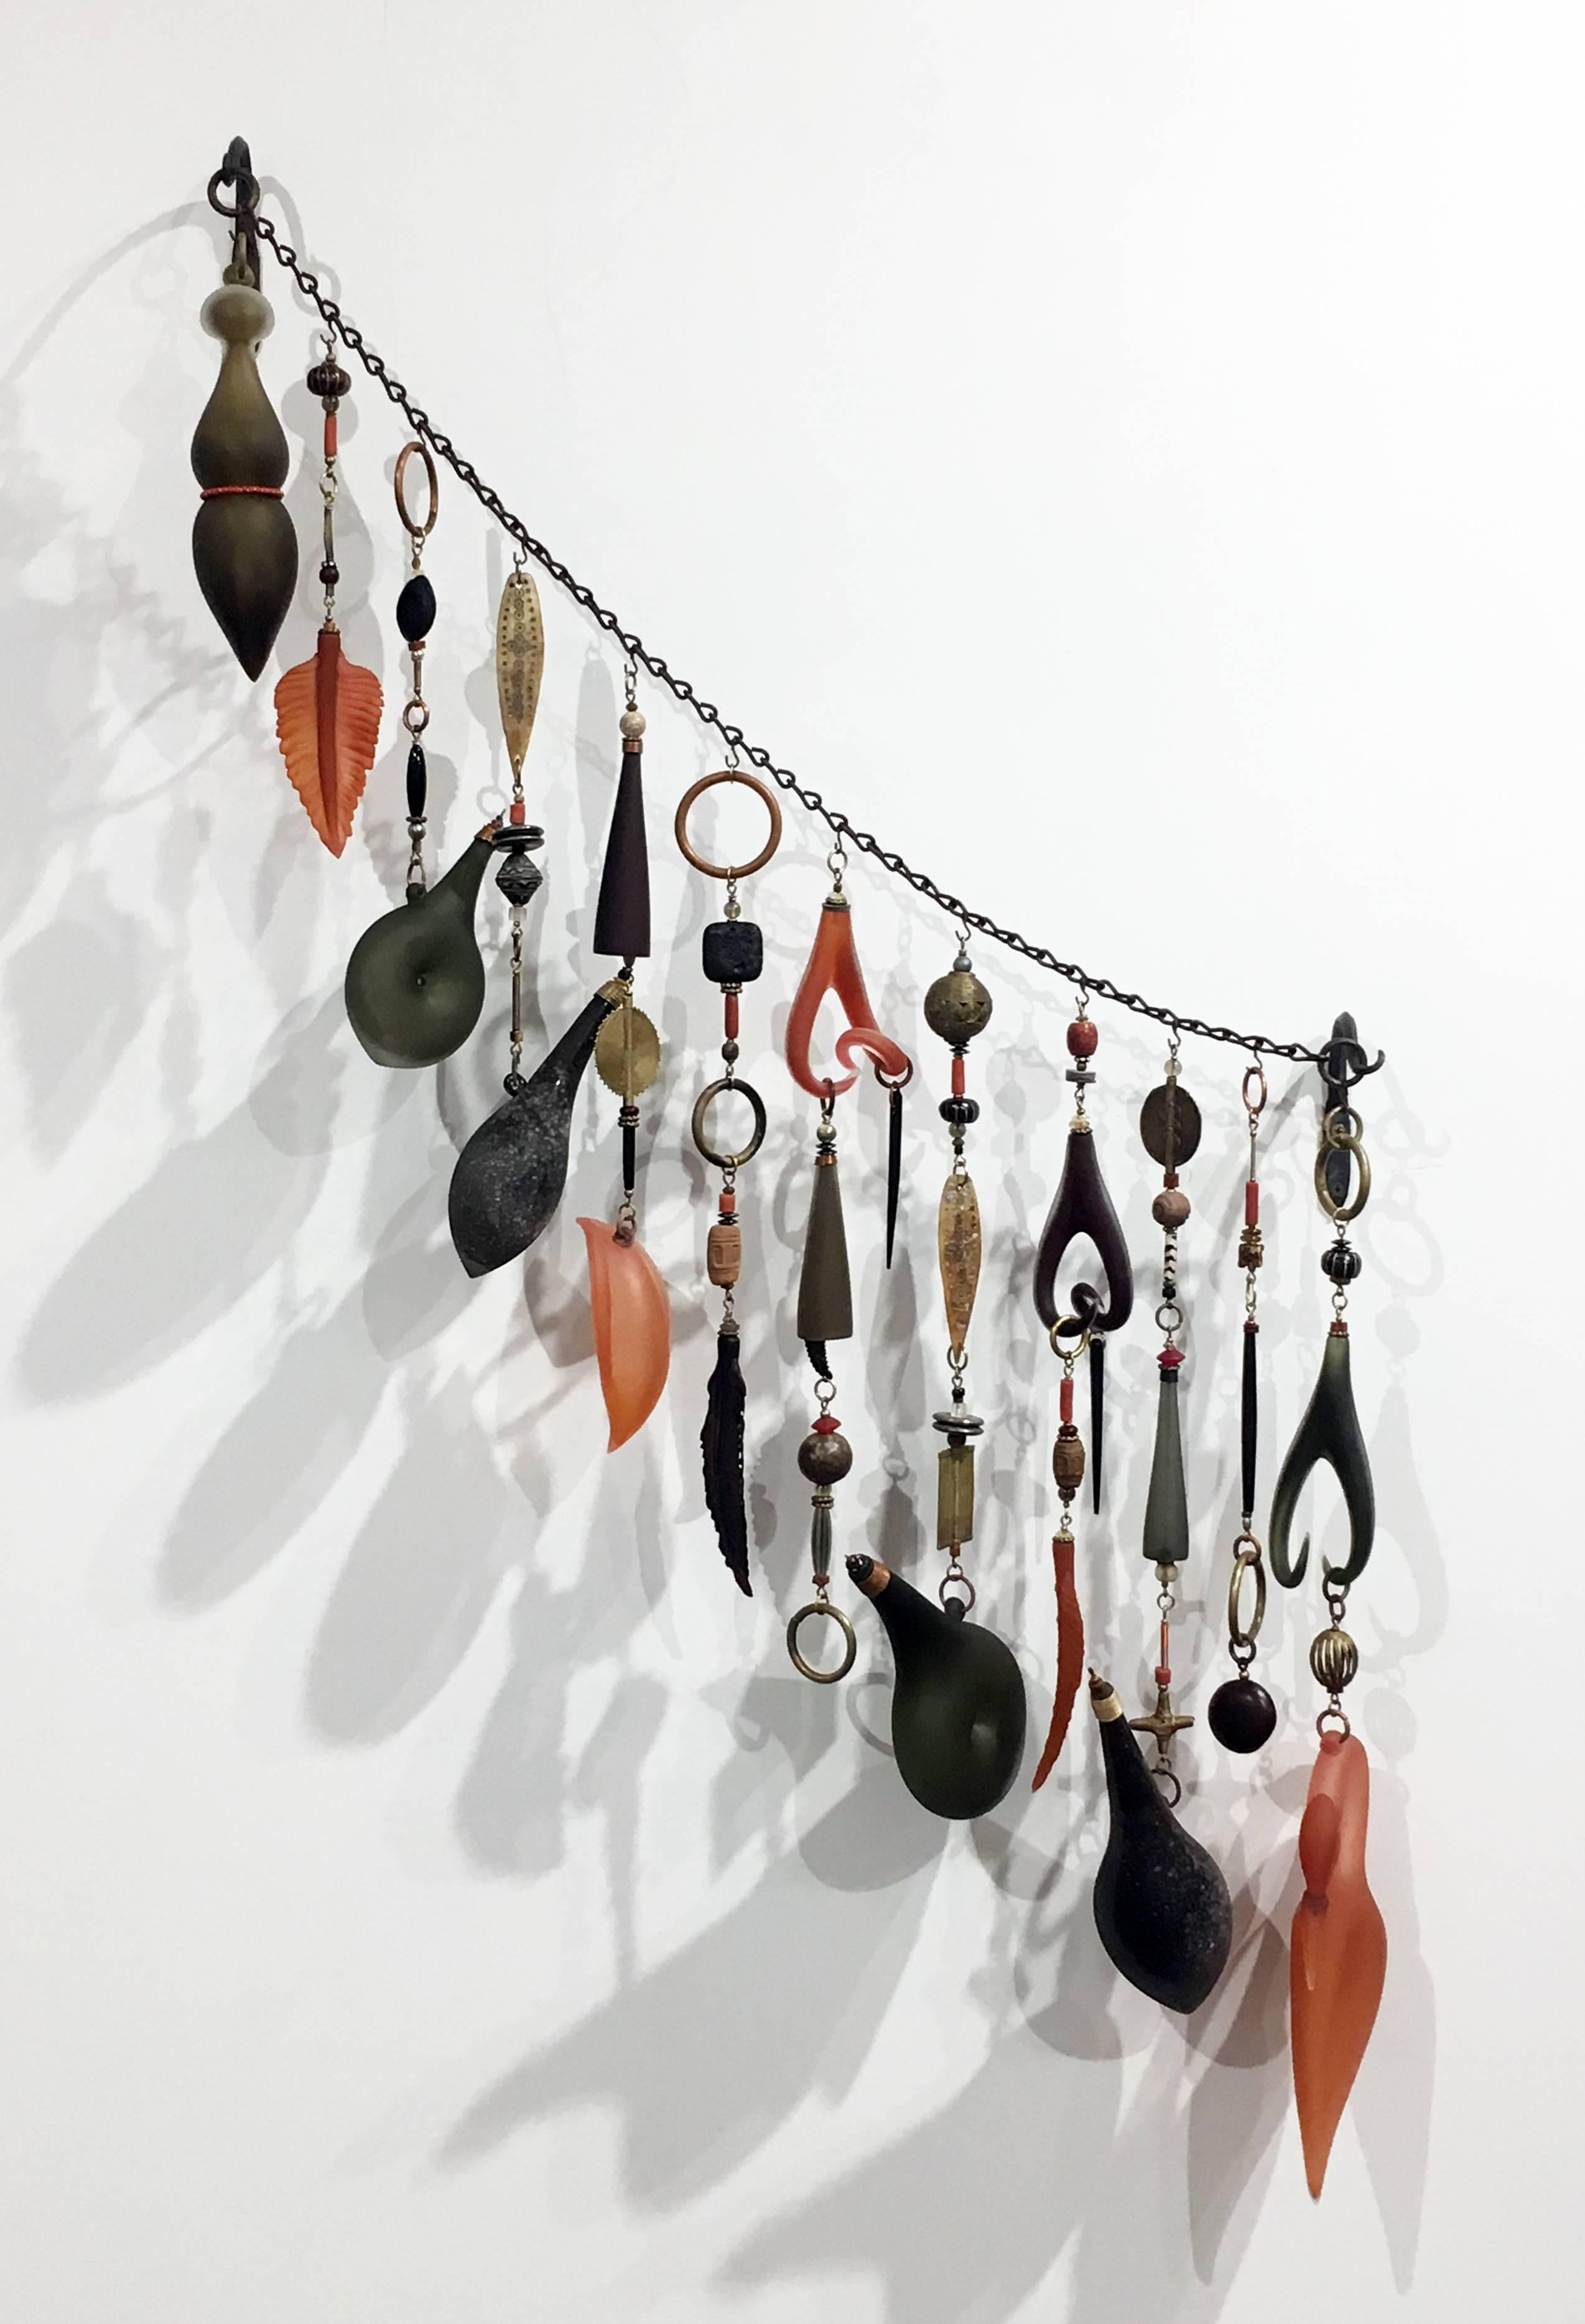 Contemporary Blown Glass and Metal Sculpture, Wall Mounting with Mixed Media